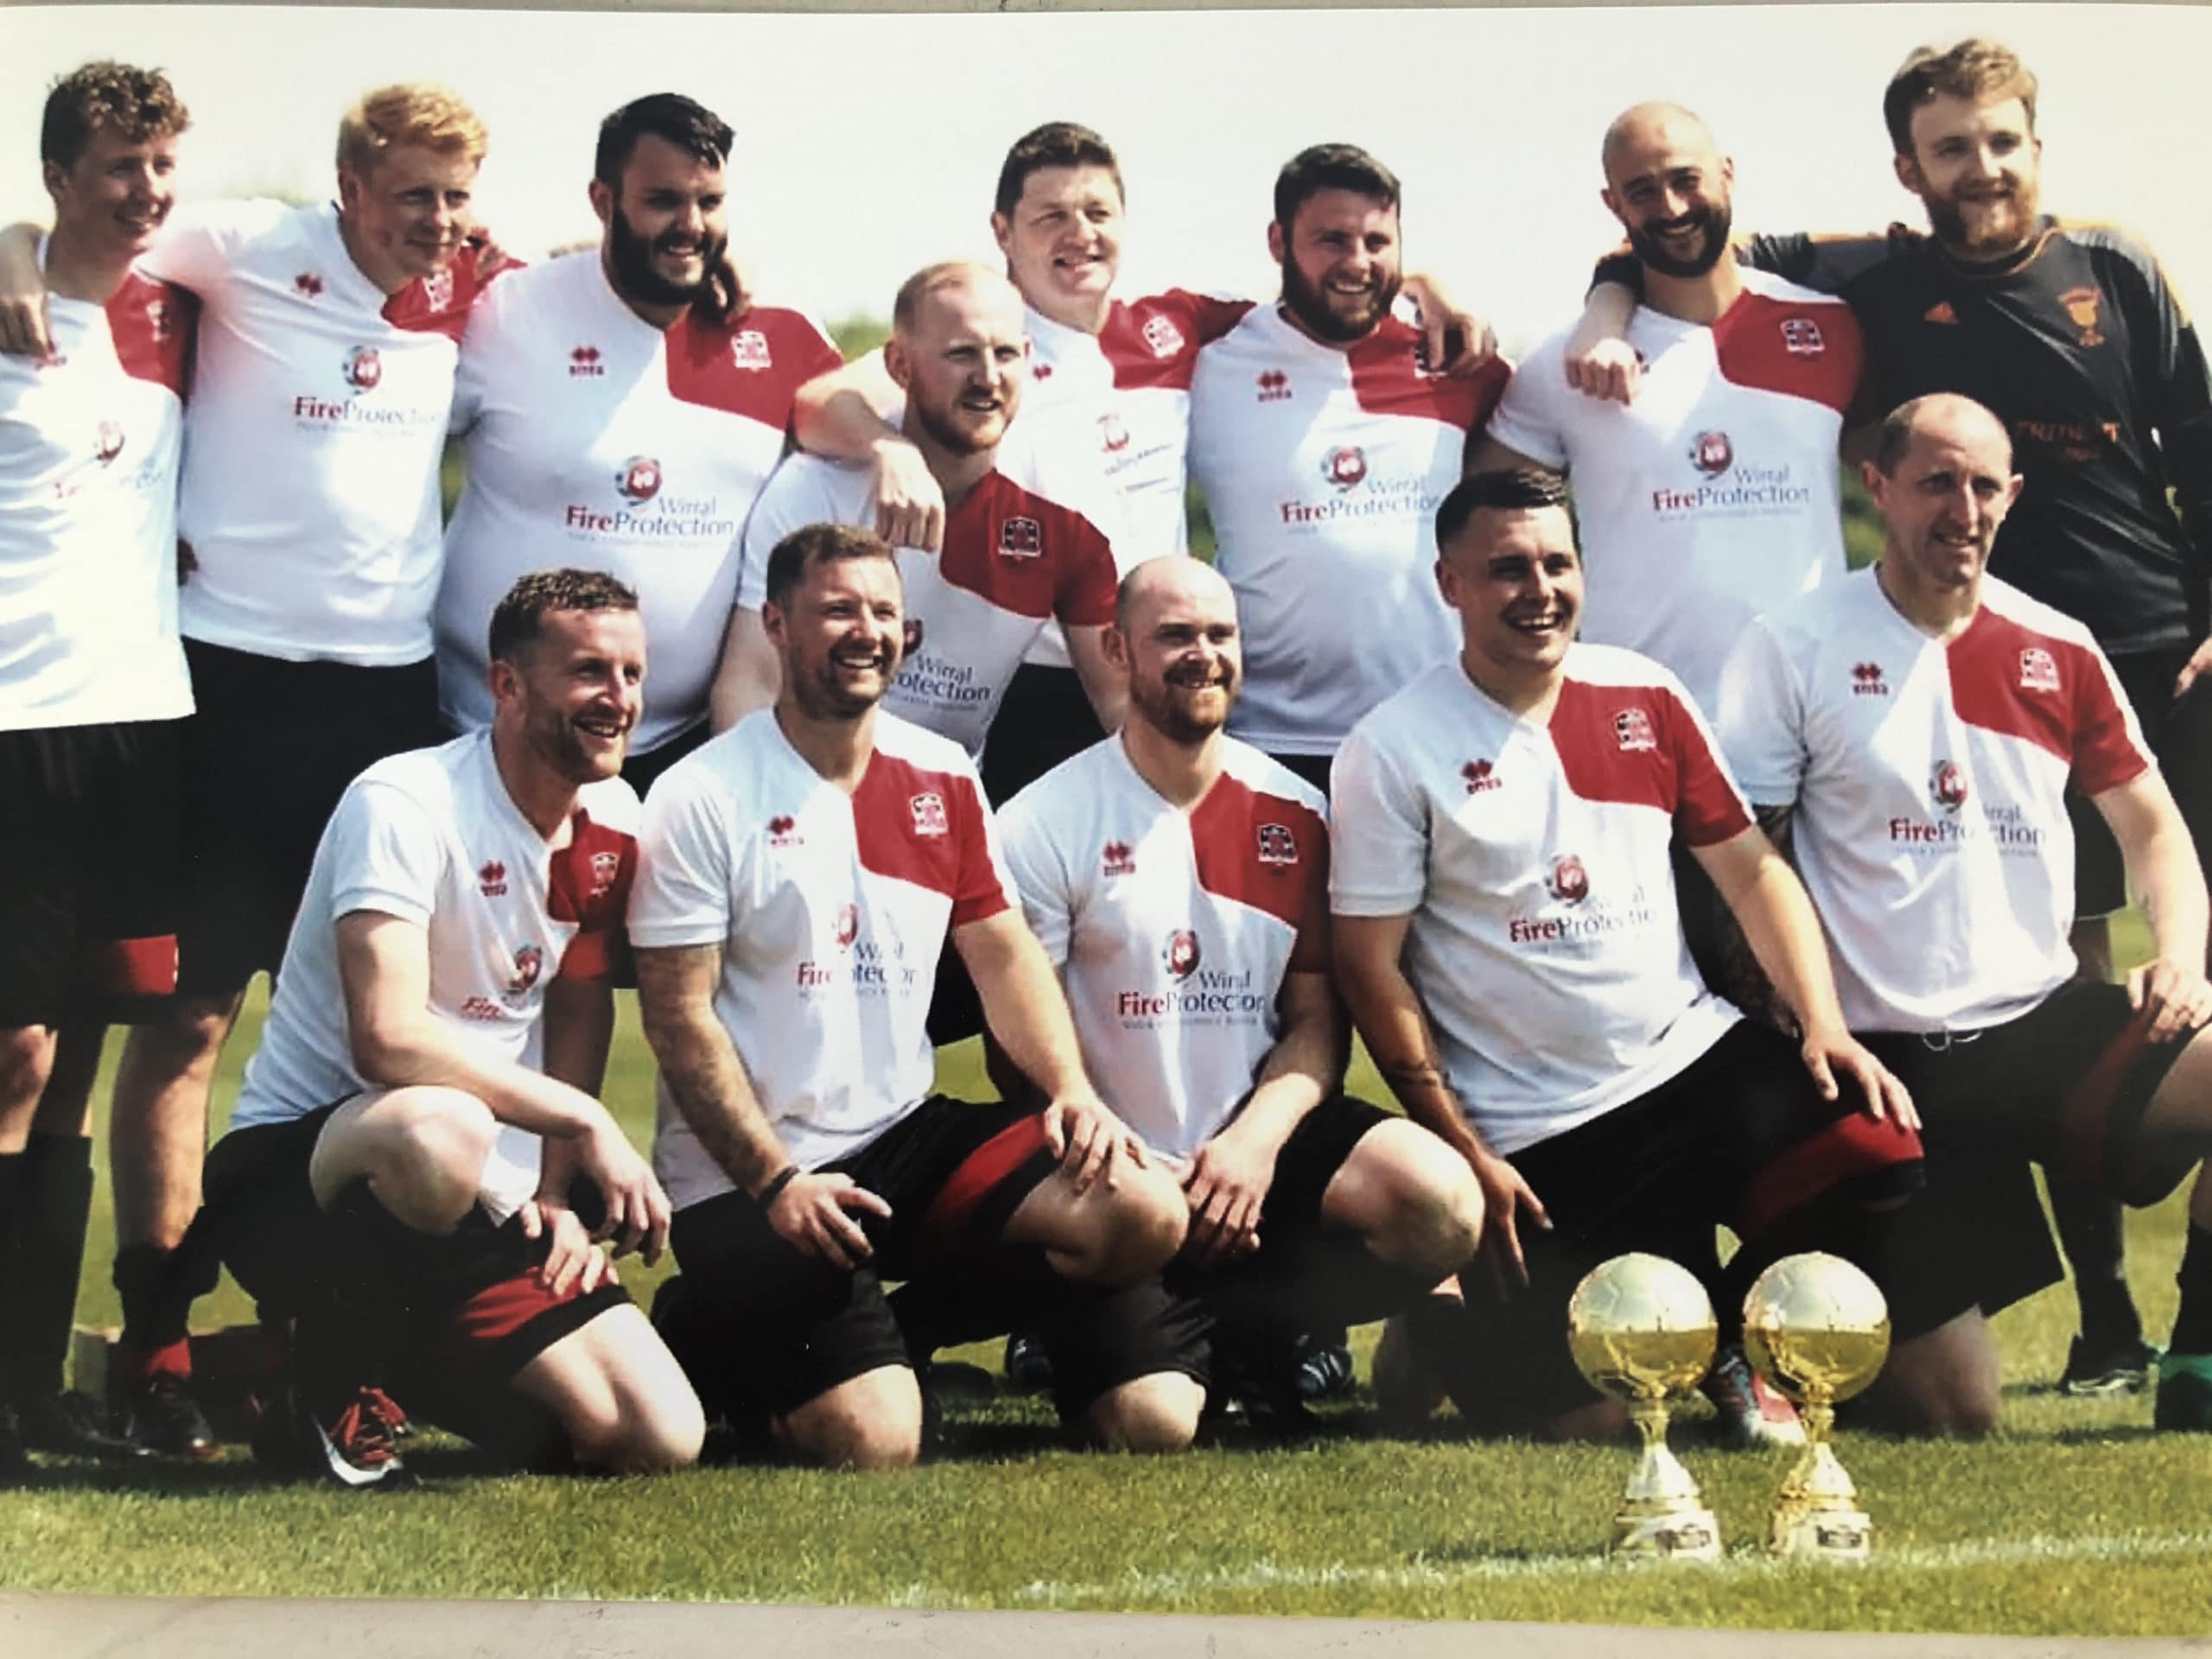 The Fire Safety Company sponsored grass roots football and it paid off with a season win